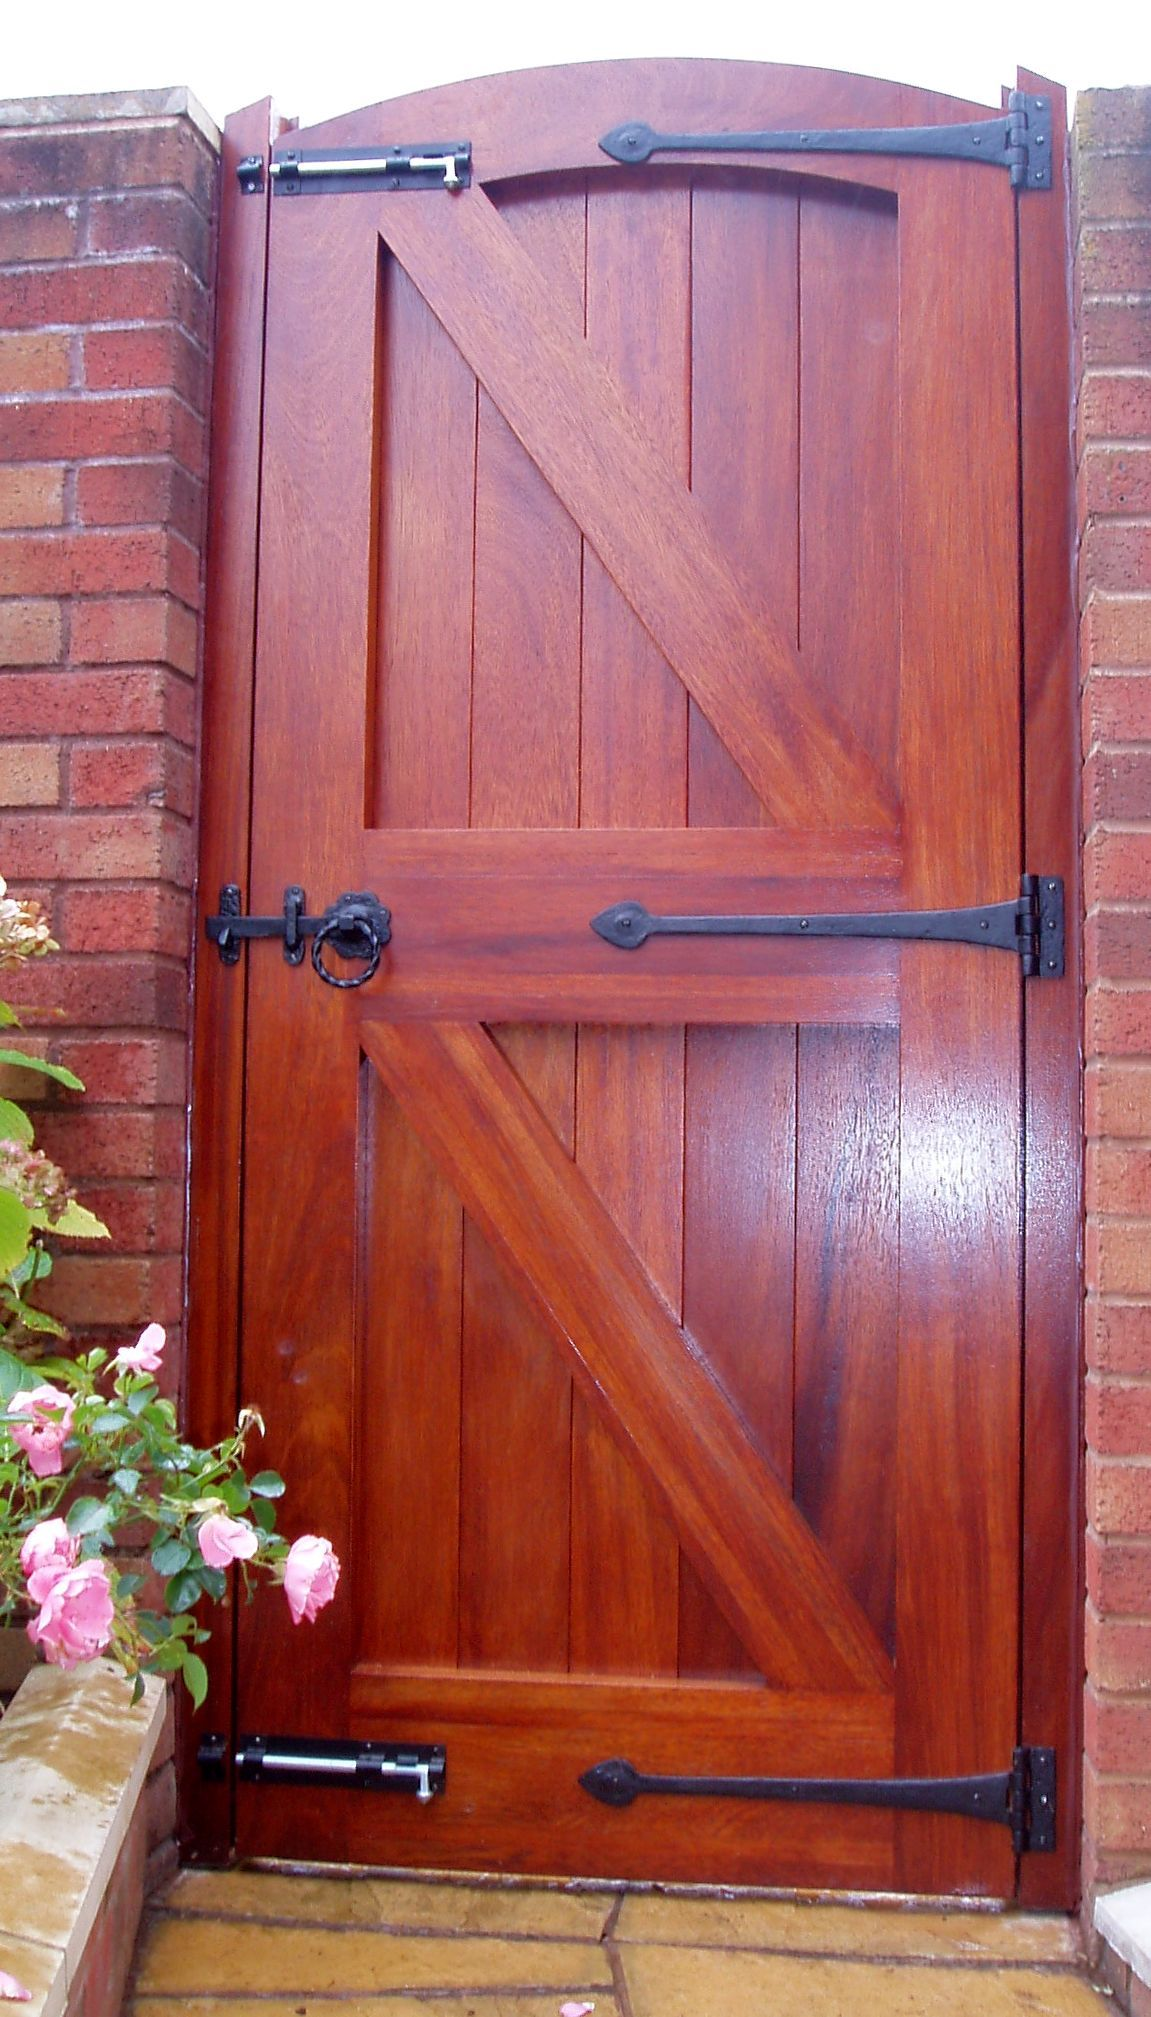 We can advise clients every step of the way from selecting which wood to use to the final coat of paint or stain, as we did for this Idigbo wooden gate. Find out more about our garden gates and doors here http://www.traditional-windows.co.uk/page/oak-buildings/24/